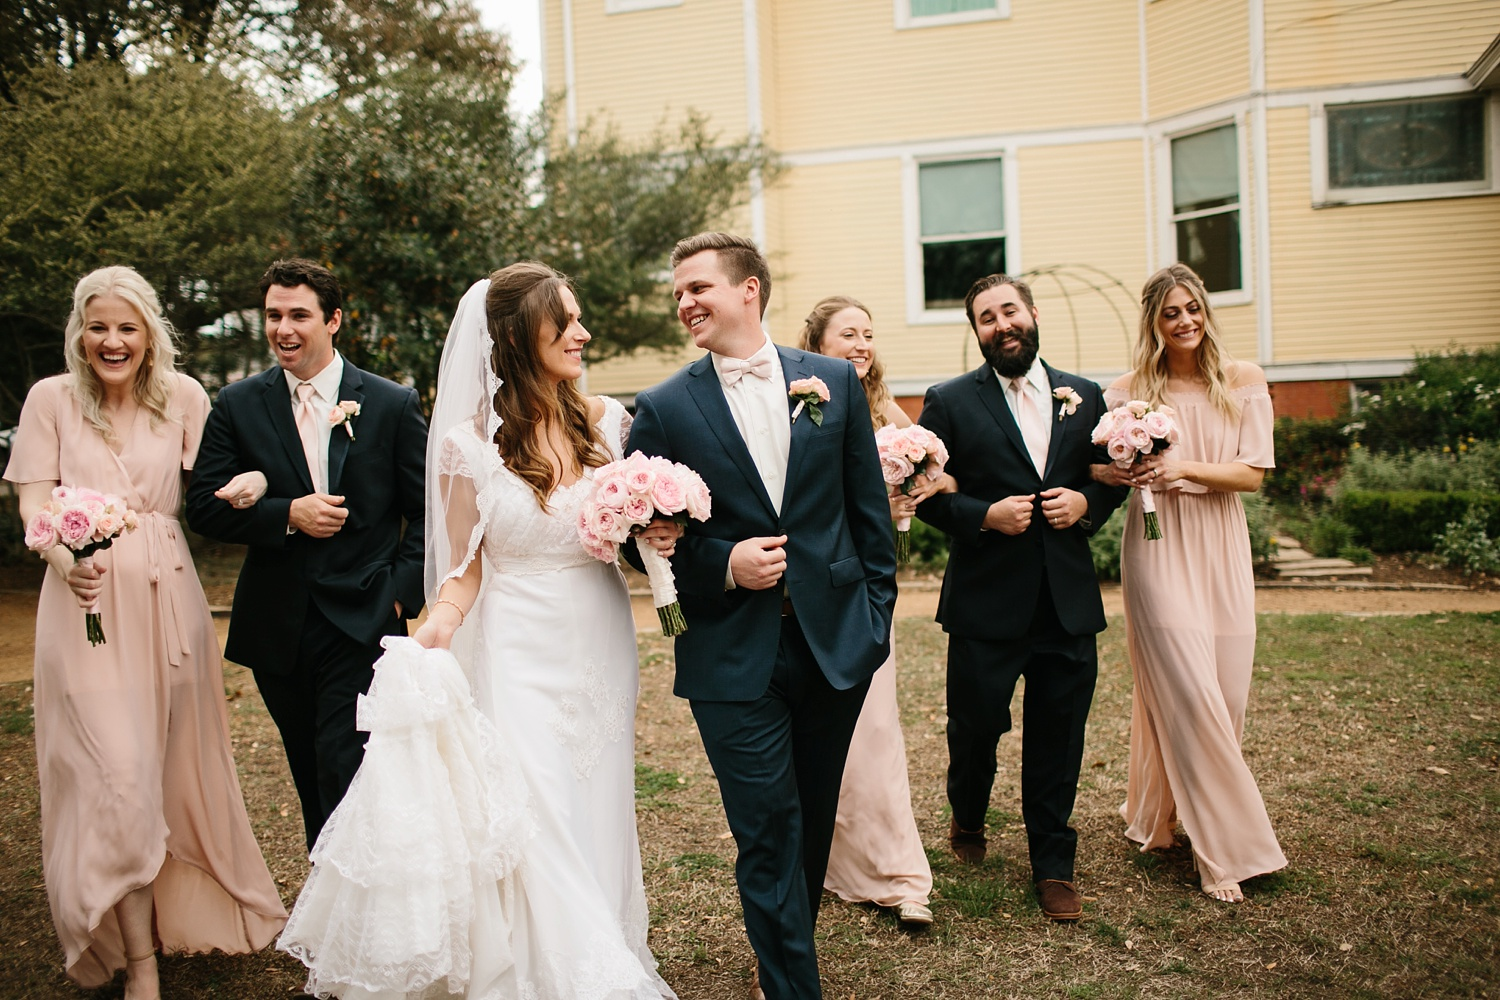 Amber + Daniel an intimate, simple, spring ceremony at Heard Craig Center and reception at Gather in McKinney, Texas by North Texas Wedding Photographer Rachel Meagan Photography 074